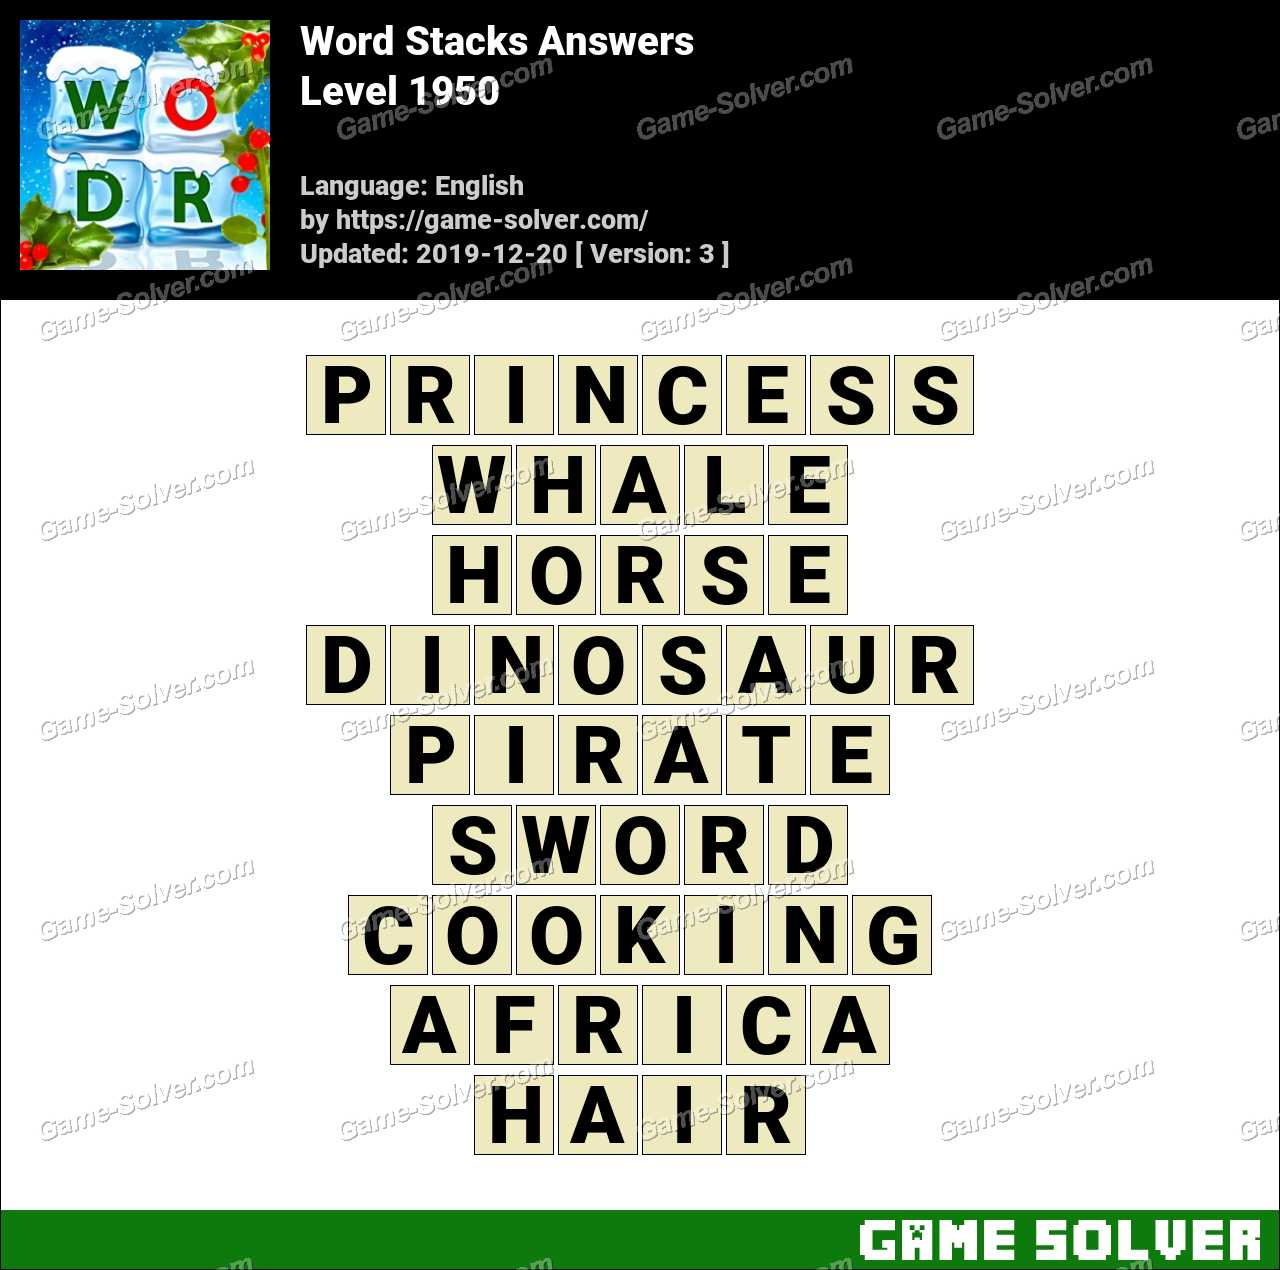 Word Stacks Level 1950 Answers